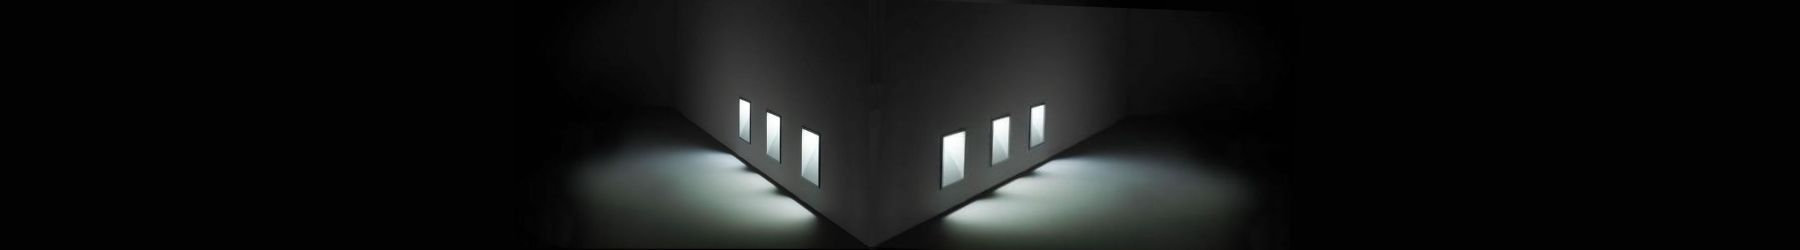 wall-recessed-black.jpg